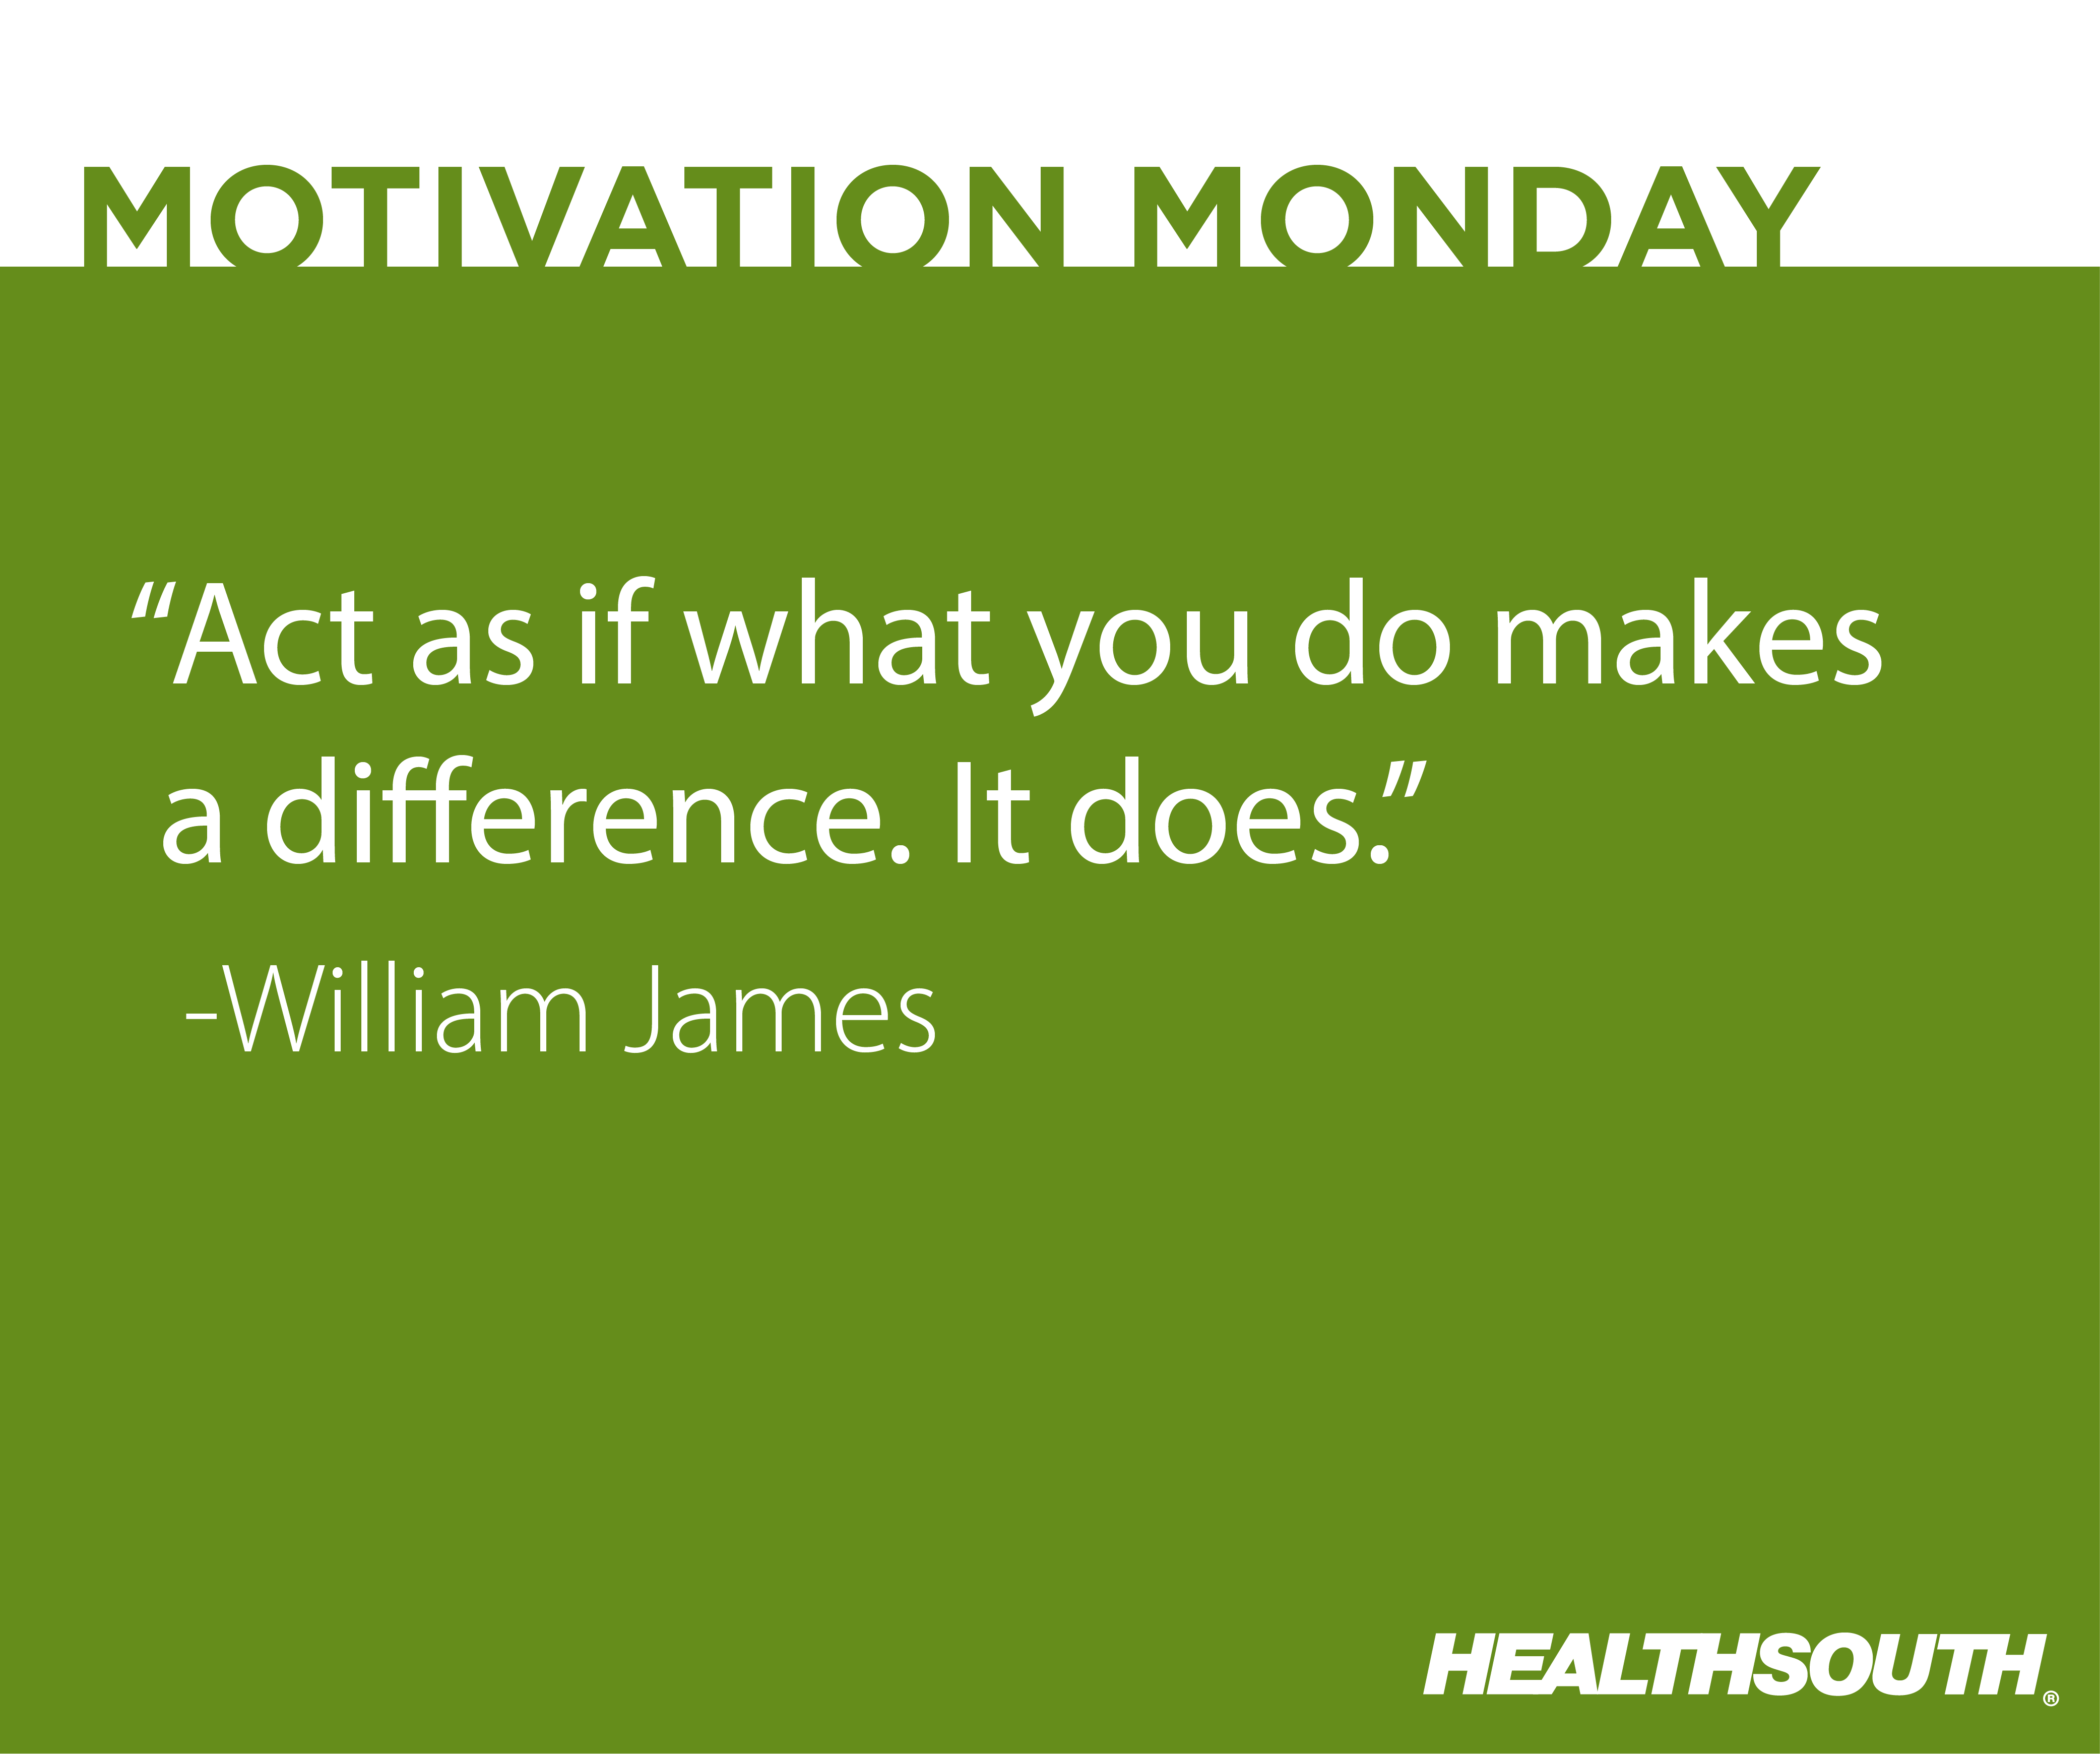 Health south physical therapy - Healthsouth Happy Motivation Monday Motivational_monday 03 Png